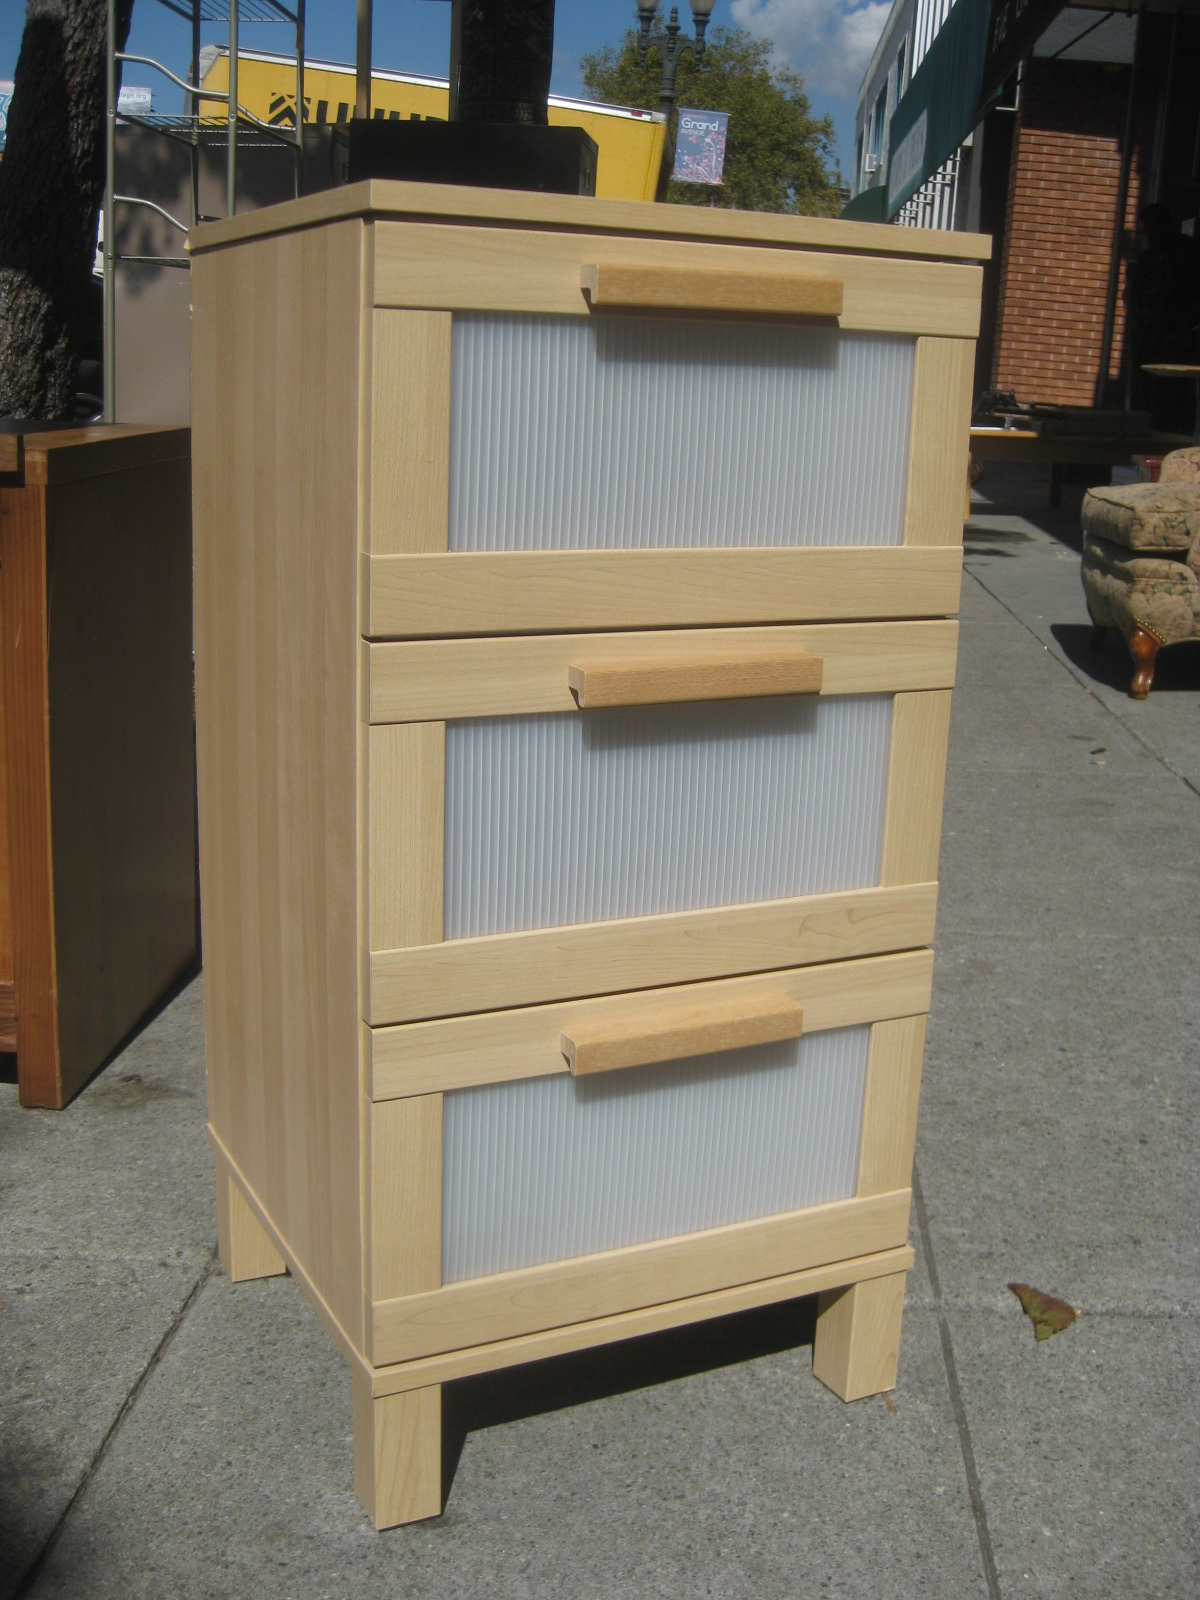 uhuru furniture collectibles sold small ikea dresser